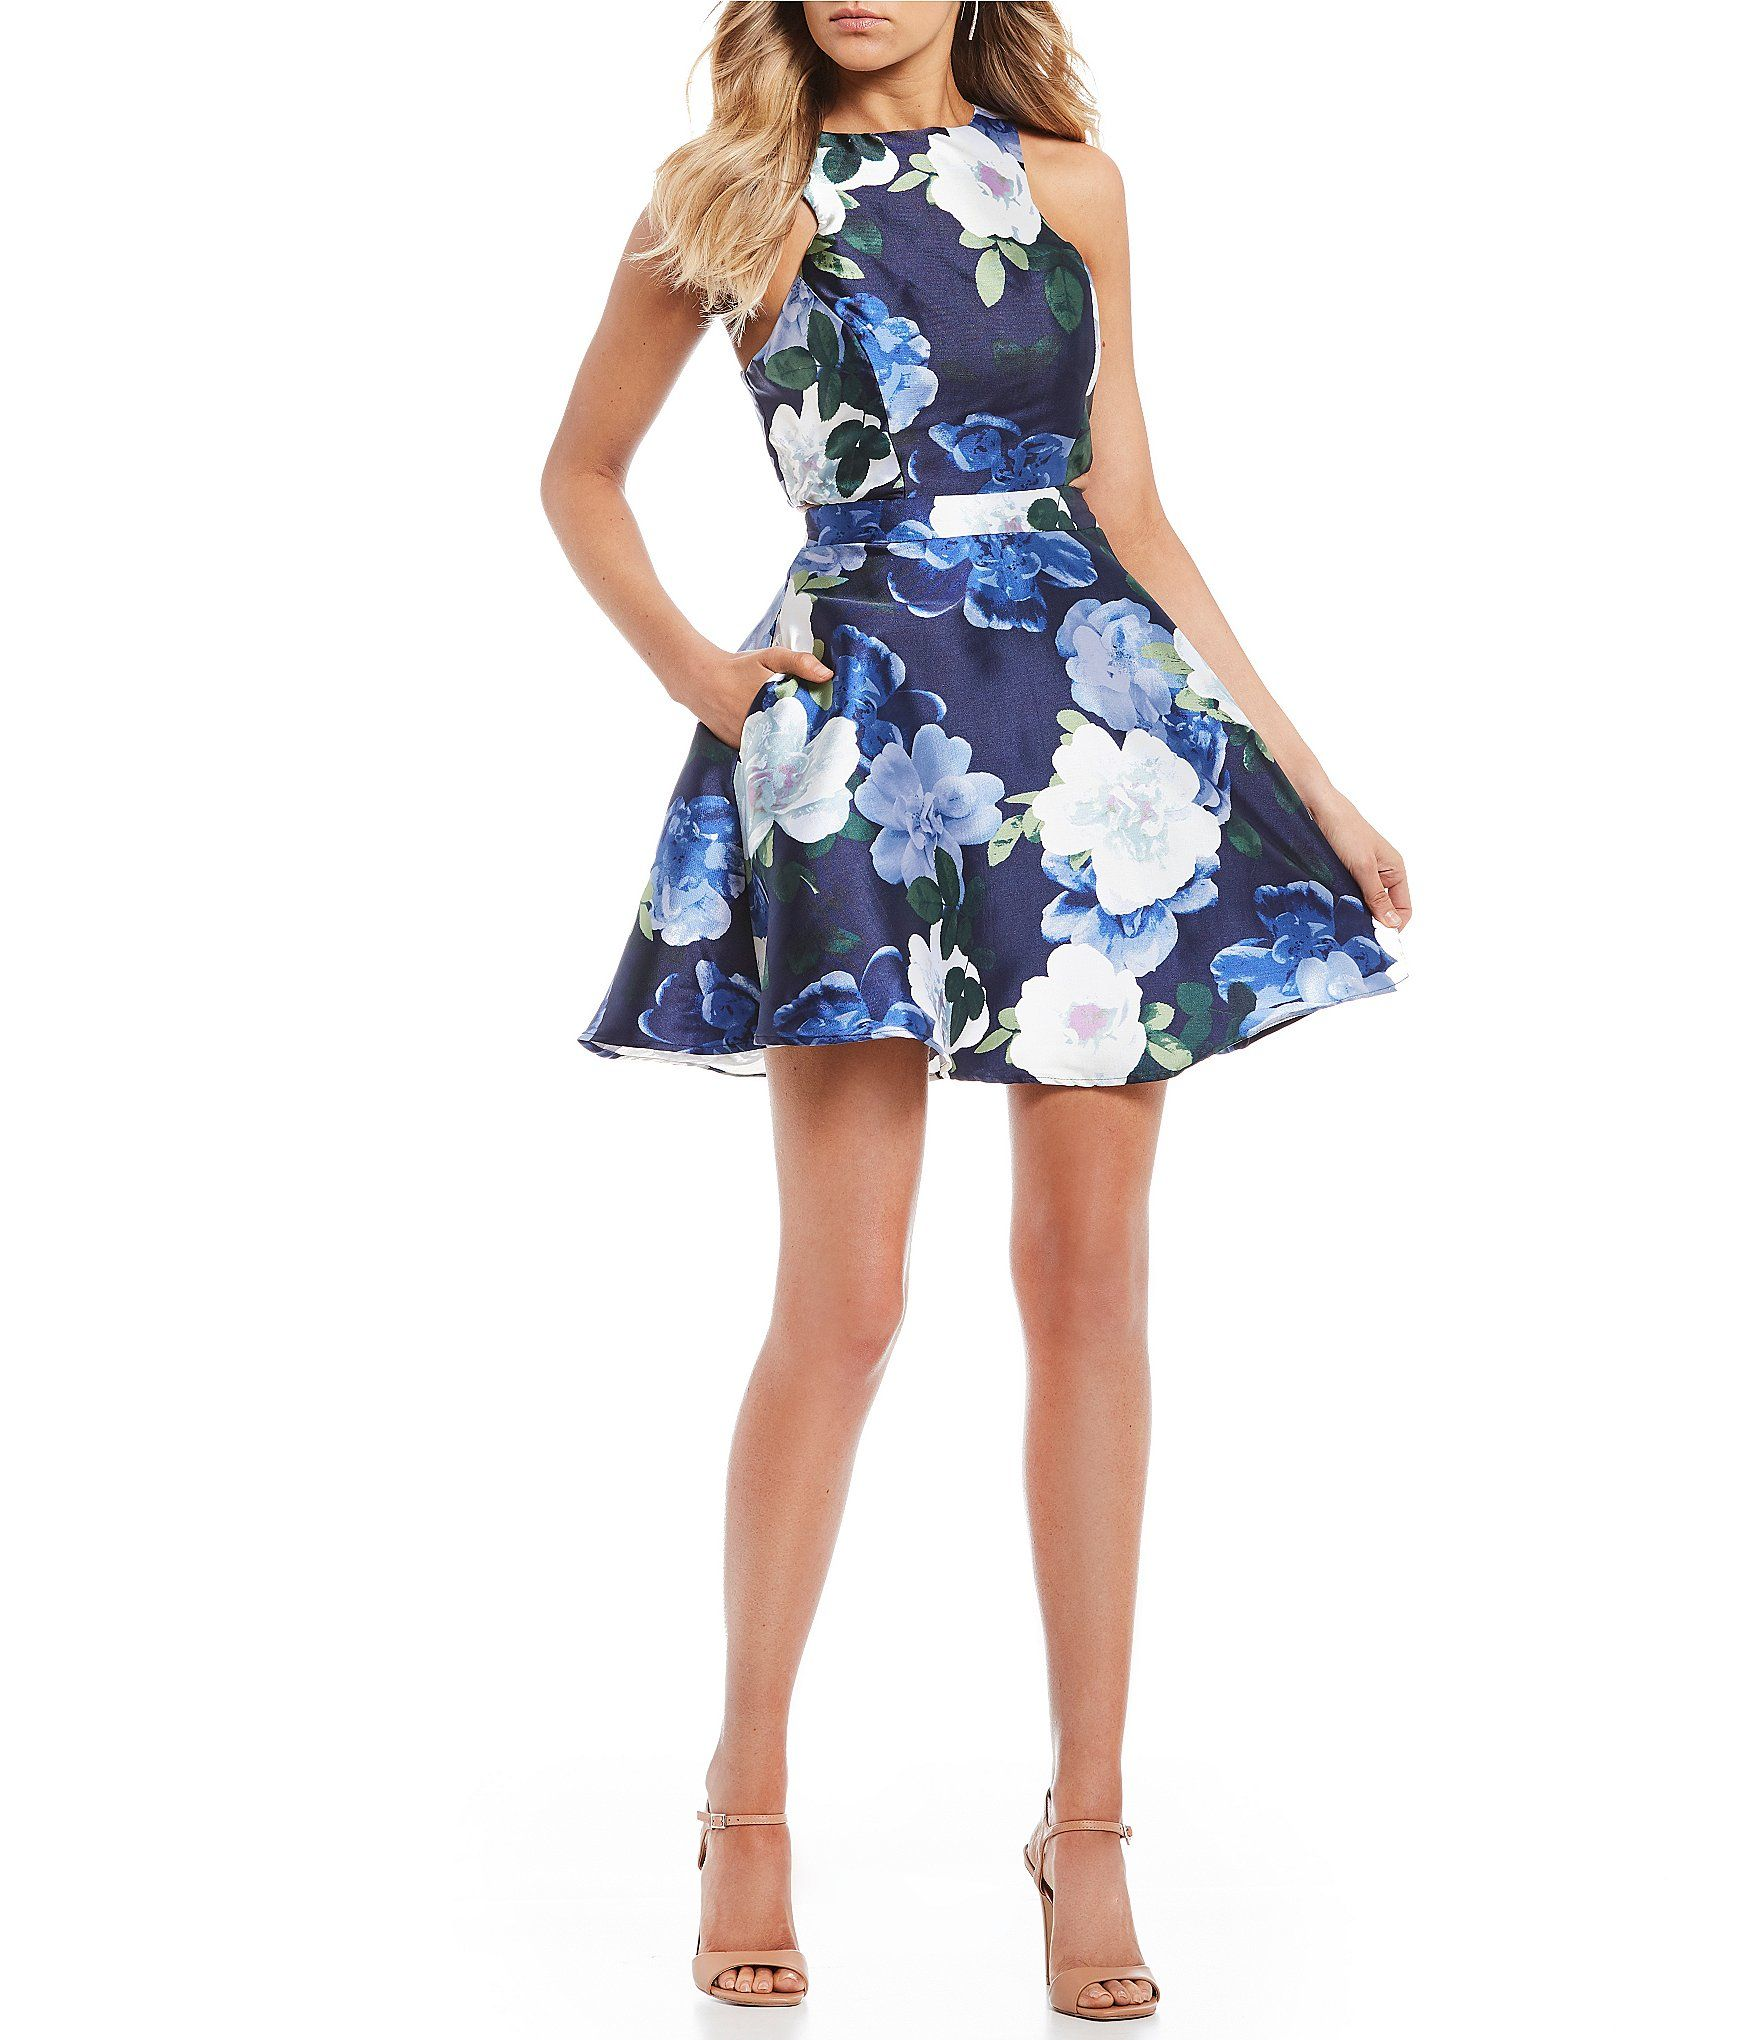 b531586985 Shop for Xtraordinary Floral Print Side Cut Out Fit-and-Flare Dress at  Dillards.com. Visit Dillards.com to find clothing